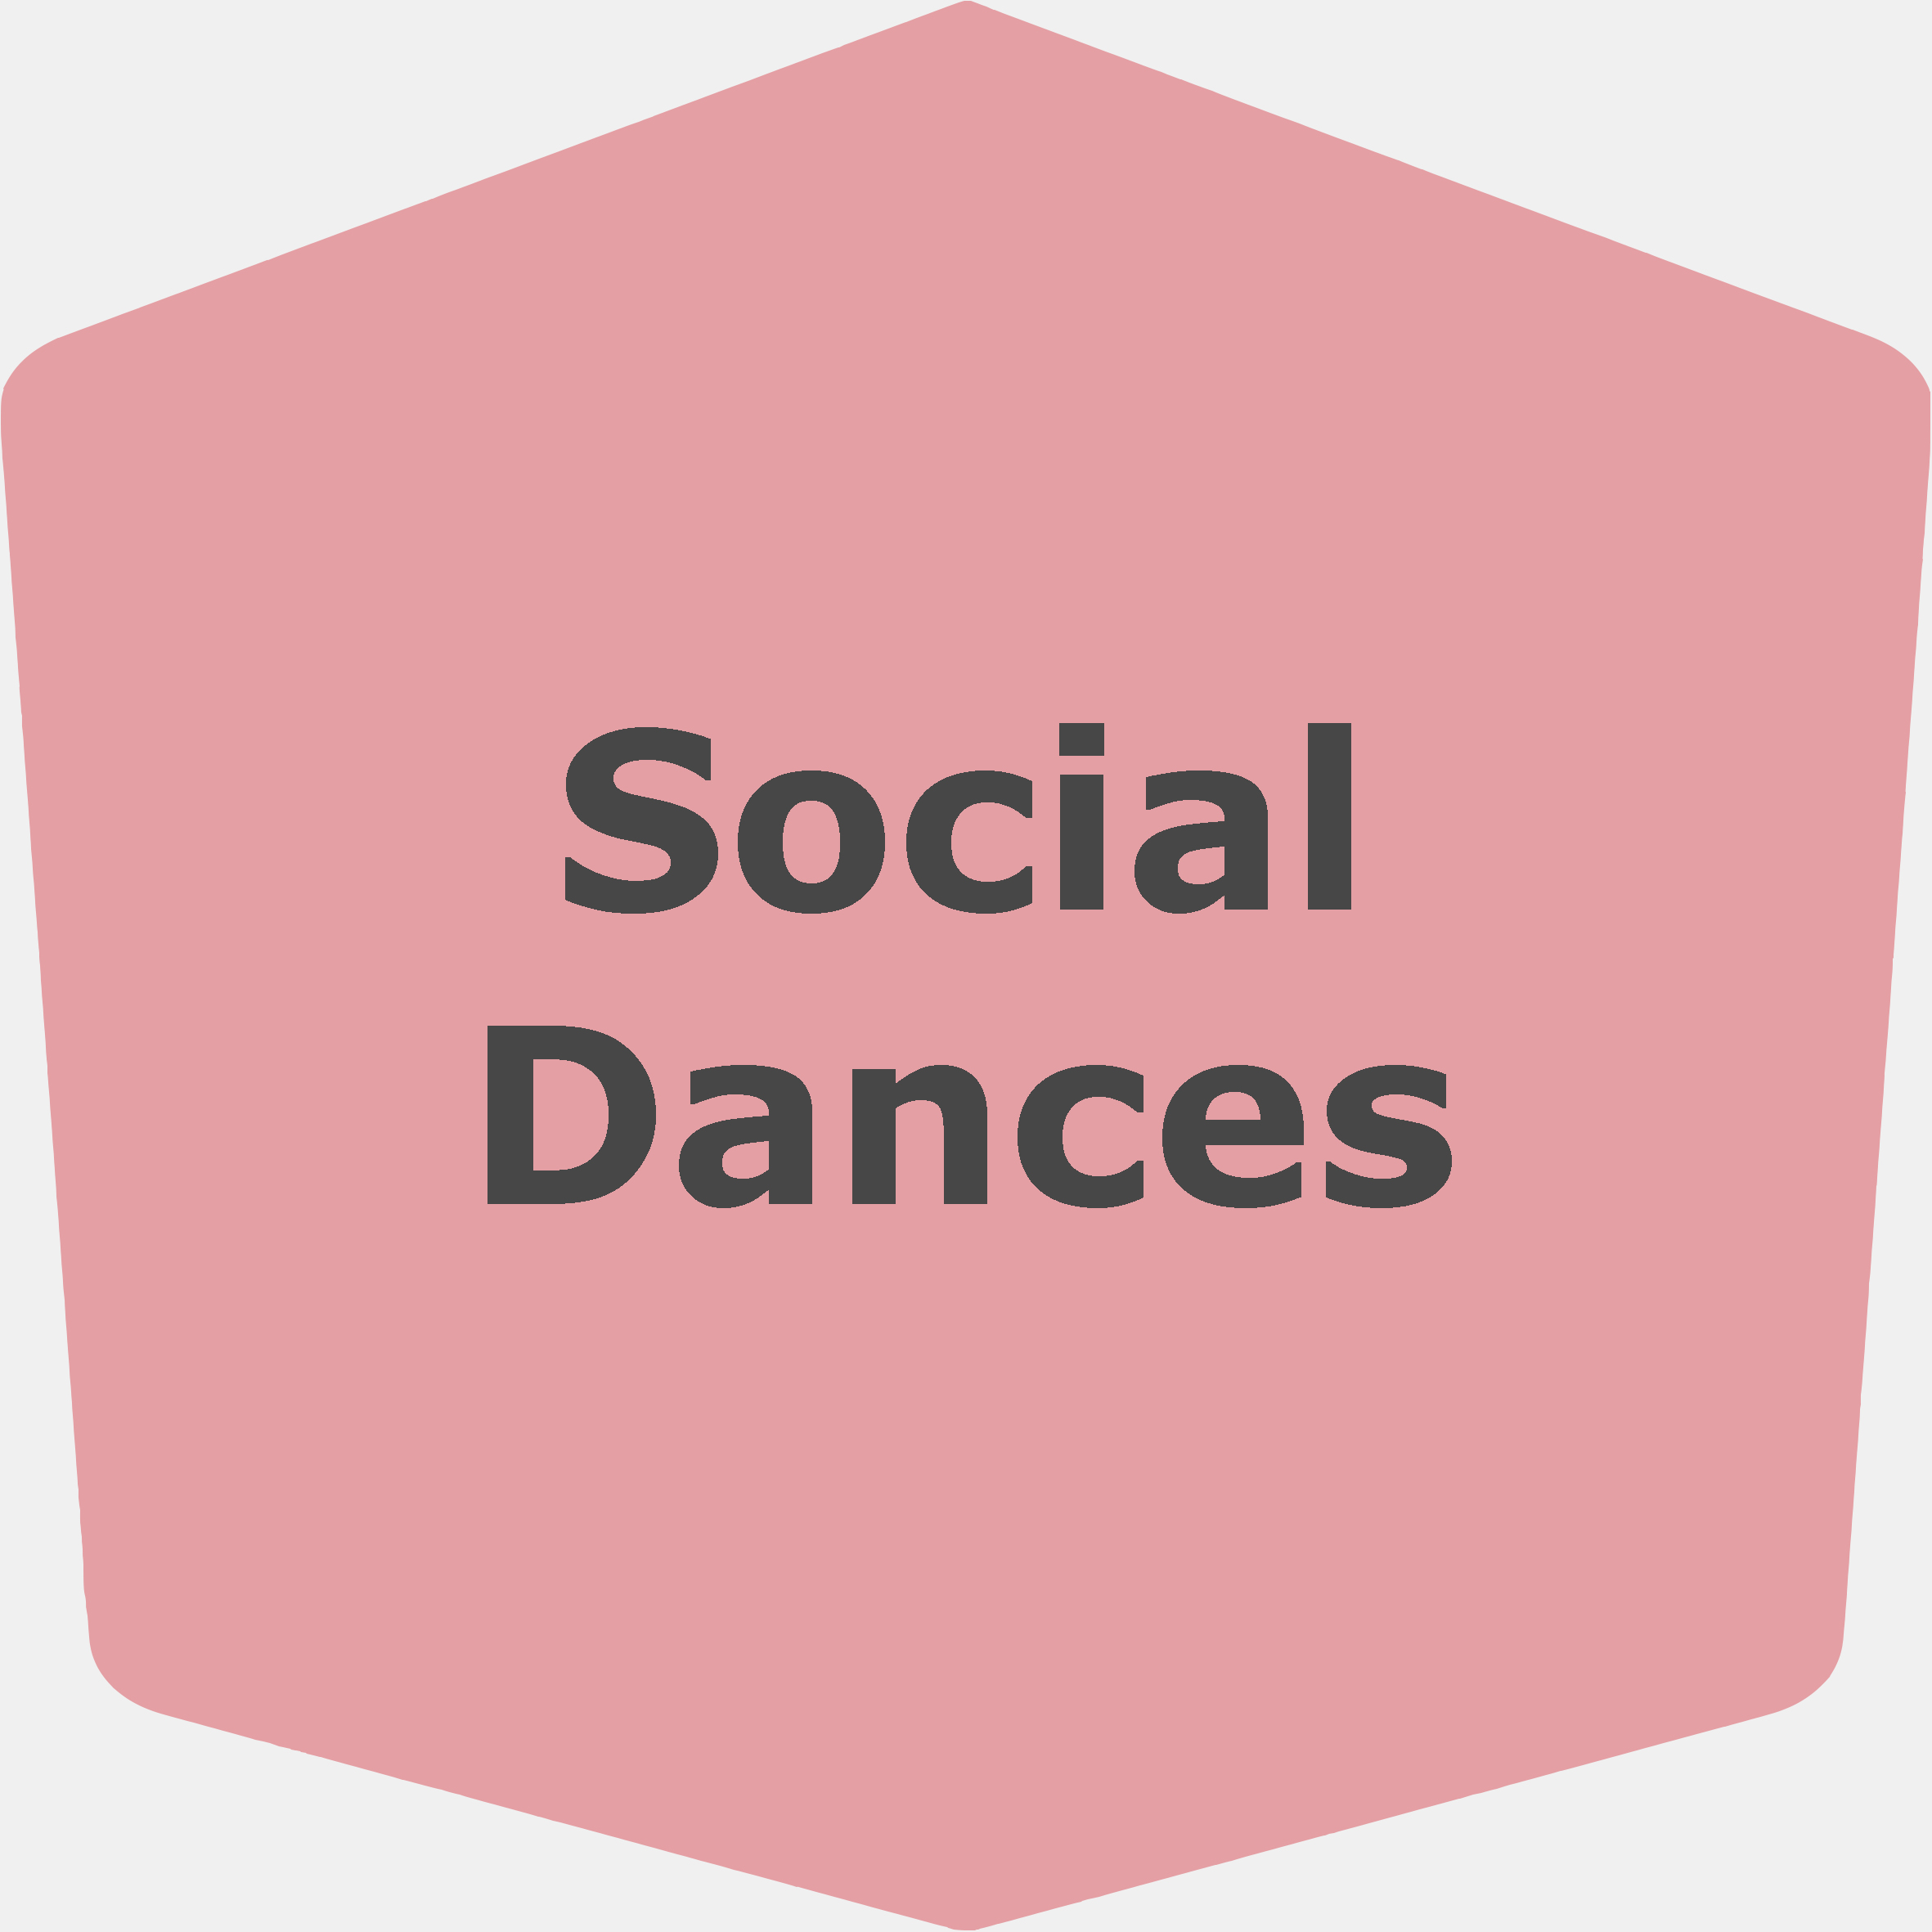 #Social Dances (Icon).jpg